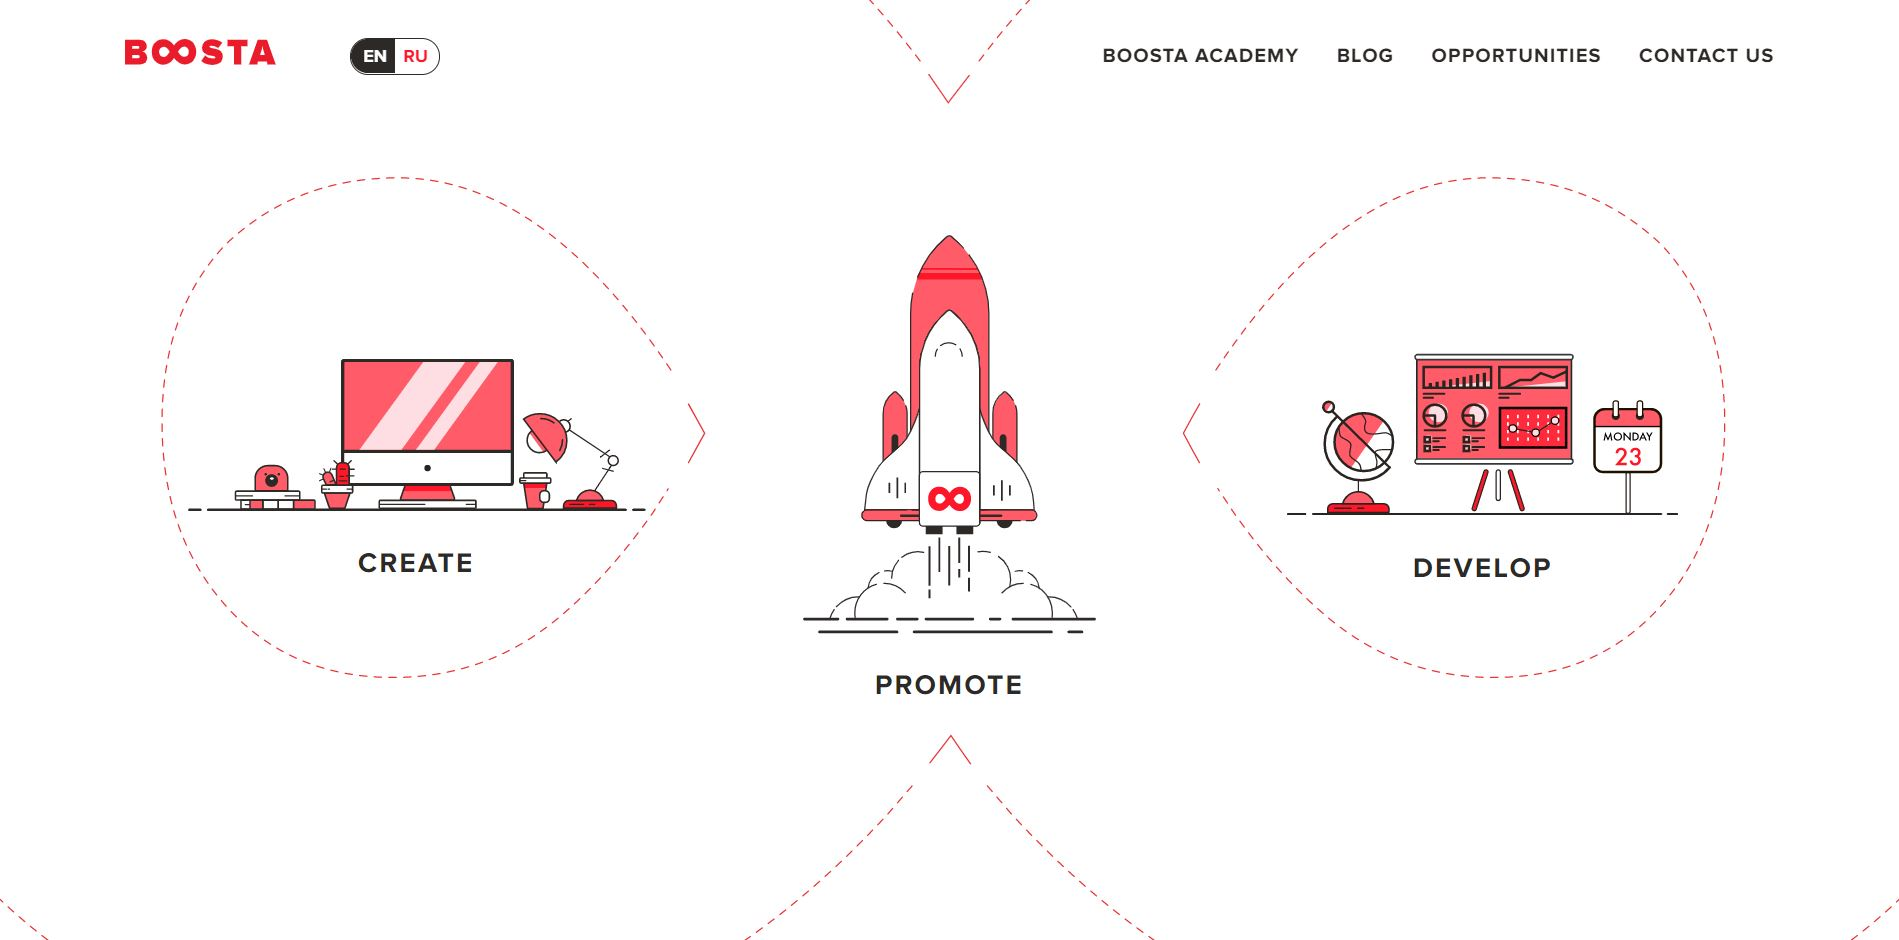 Boosta – Company Overview